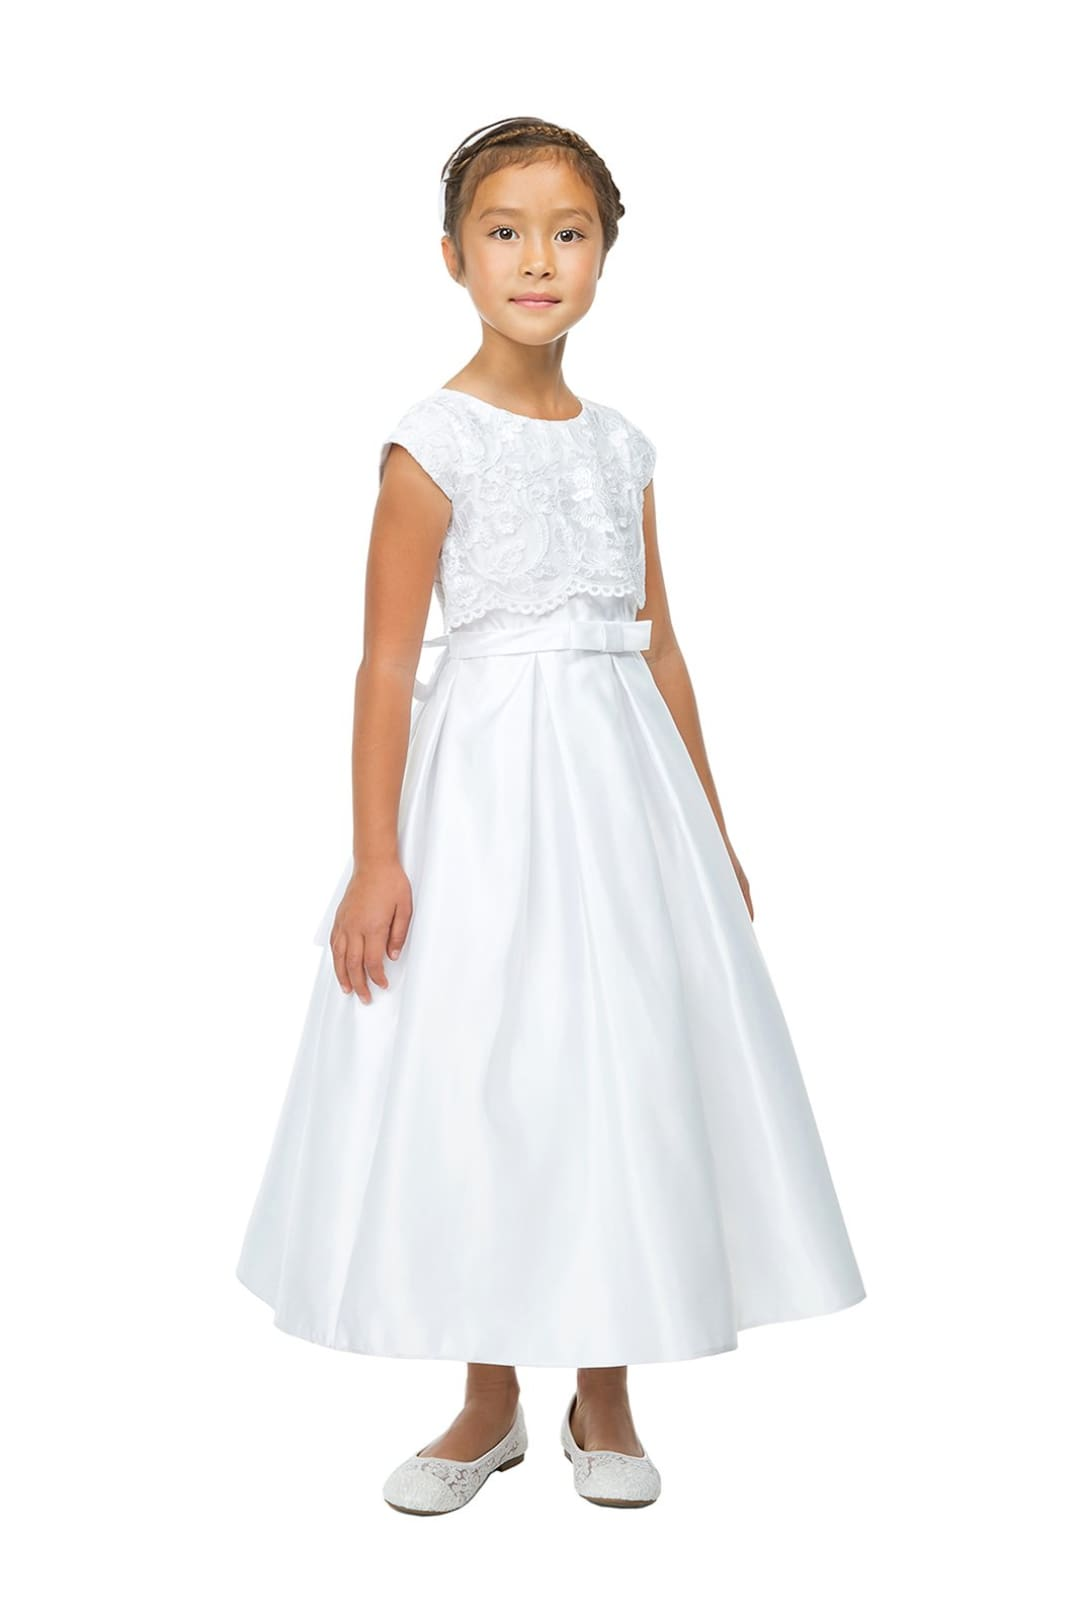 Lace and Satin Flower Girl Dress with Pockets - LAK785 - 6